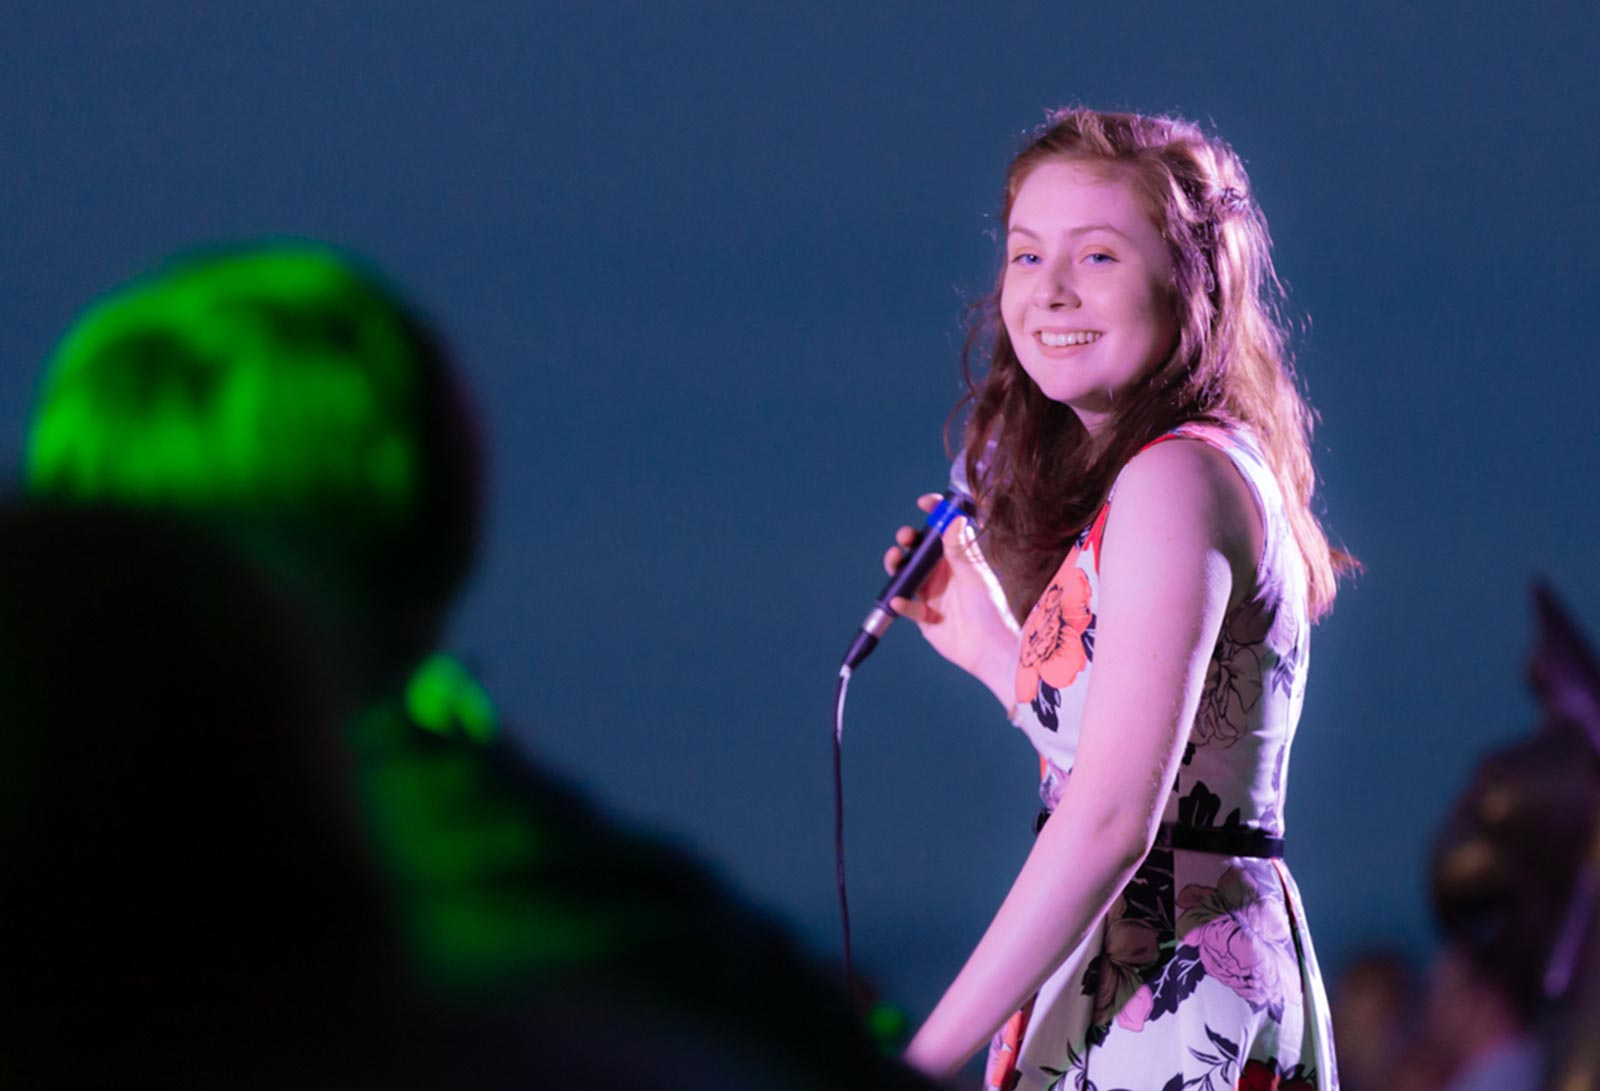 Vocalist, Rhiannon, during a concert at the Crane Estate in Ipswich MA